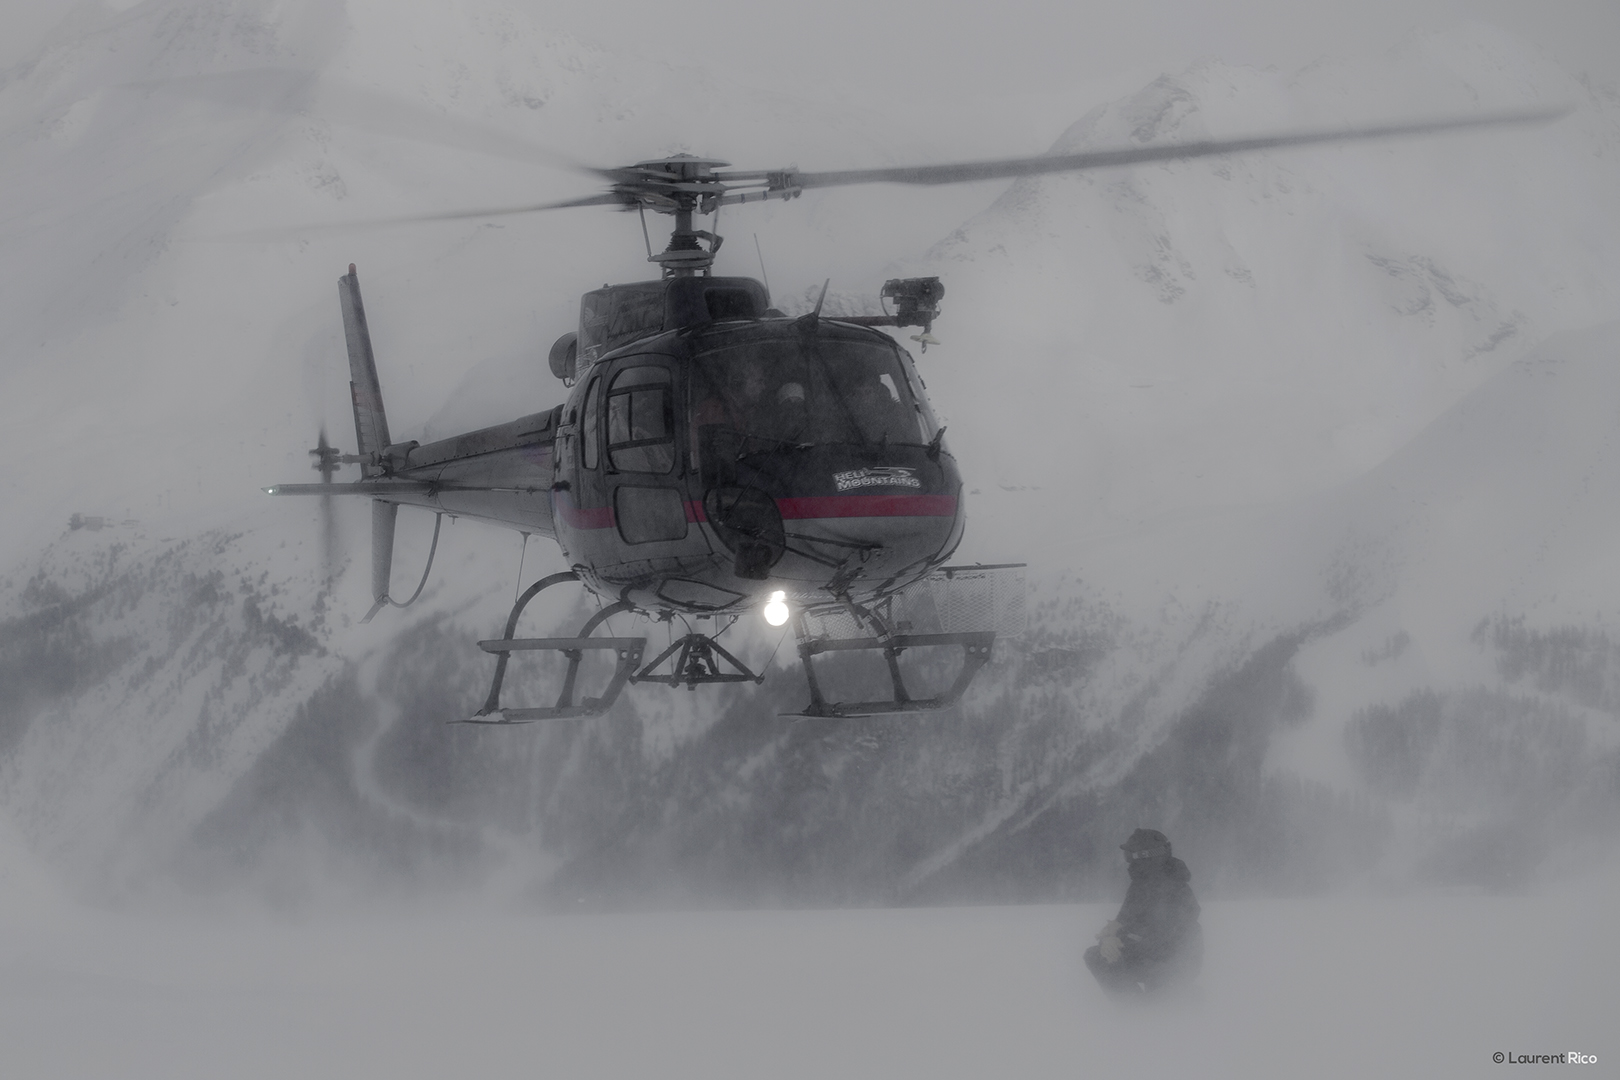 laurent-rico-production-photographe-videaste-savoie-les arcs-val d'isere-tignes-reportage-outdoor-helicoptere-evenements-organisations-seminaires-